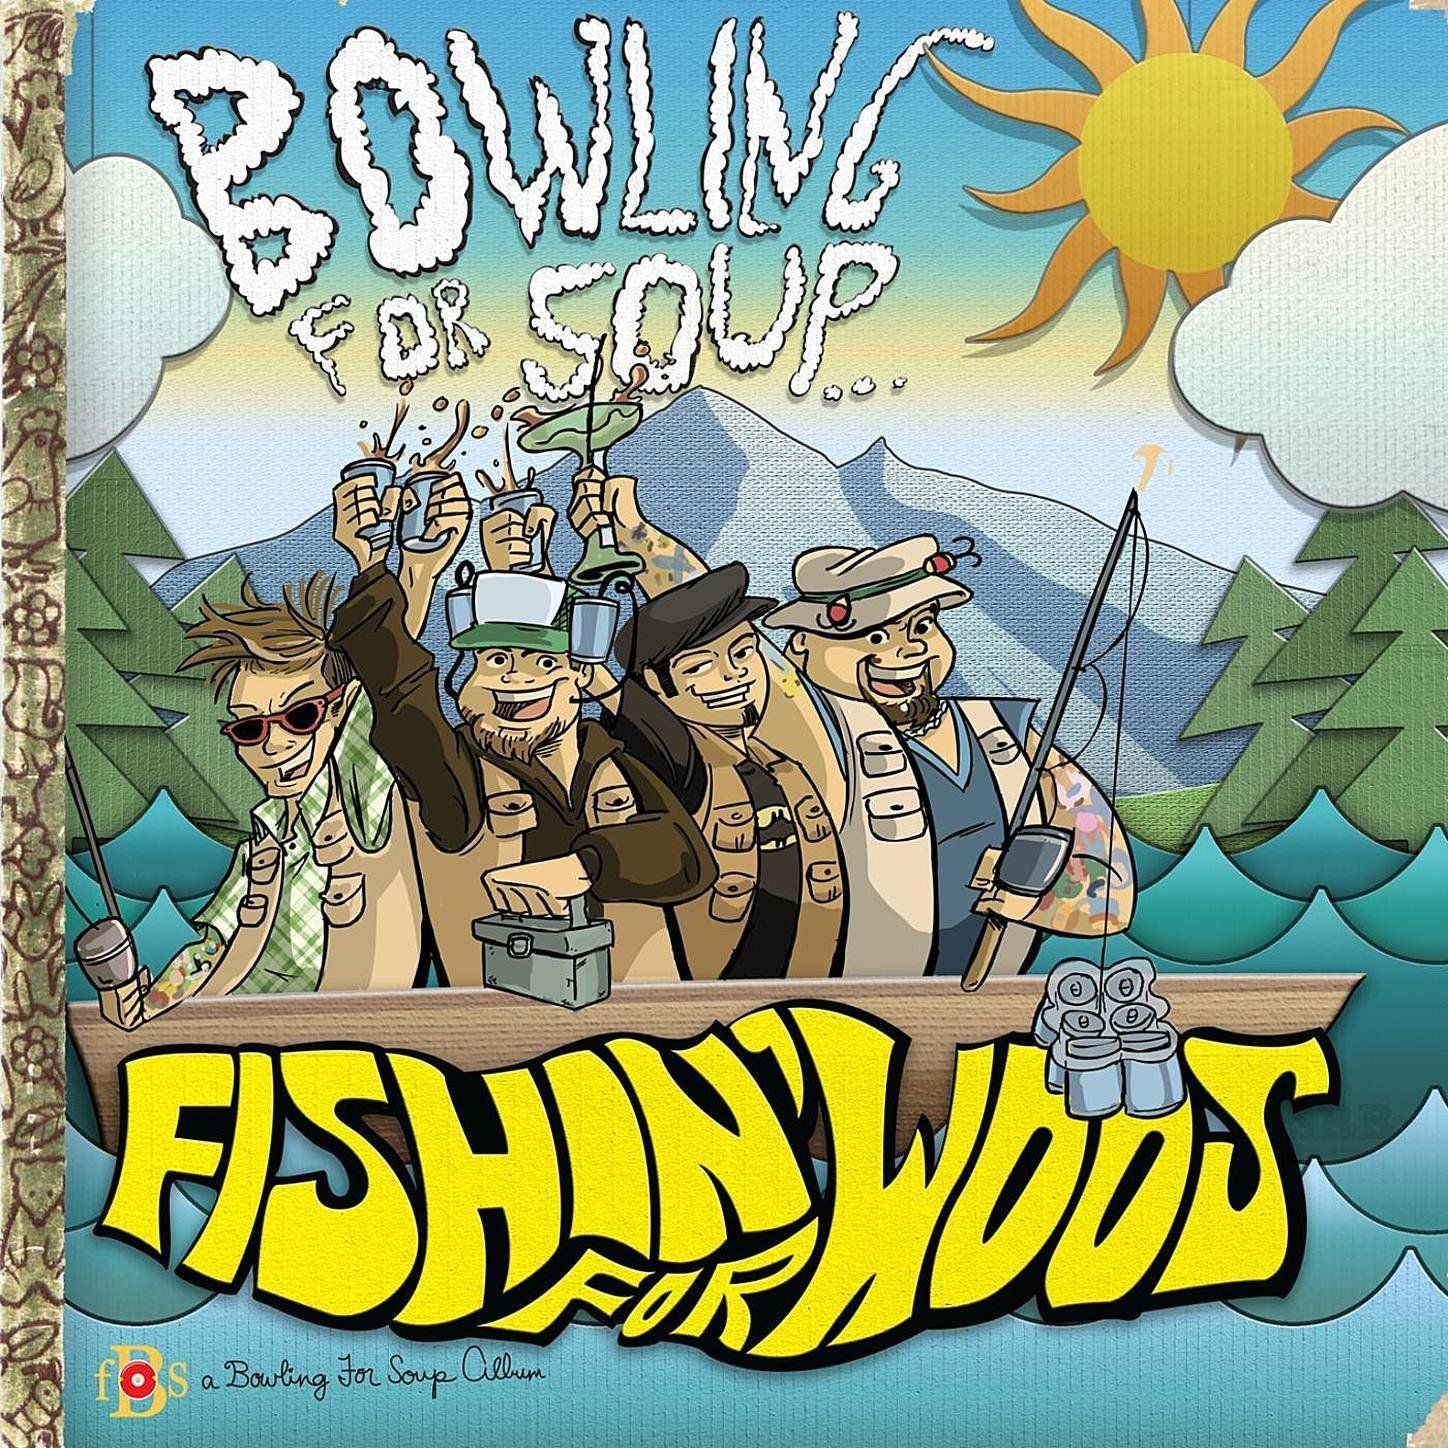 Bowling for Soup - Fishin' For Woos album cover